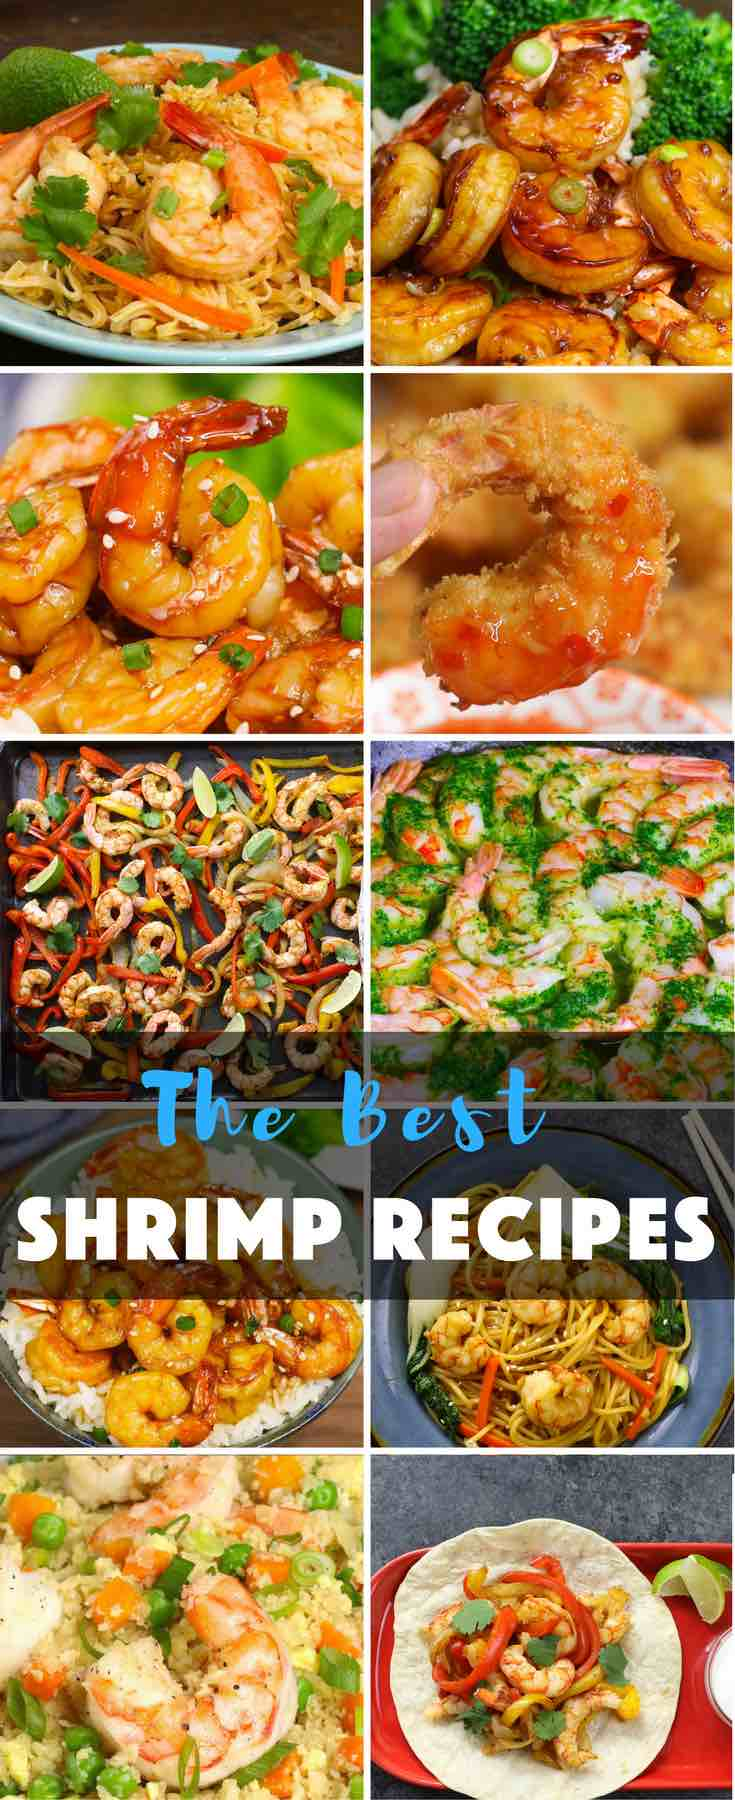 This collection of the most popular shrimp recipes helps you to get the easy and restaurant-quality dinner ready within 15 to 30 minutes. From taking them out from freezer to getting the dinner ready, it takes much less time than most other recipes. Best of all, they are so delicious.